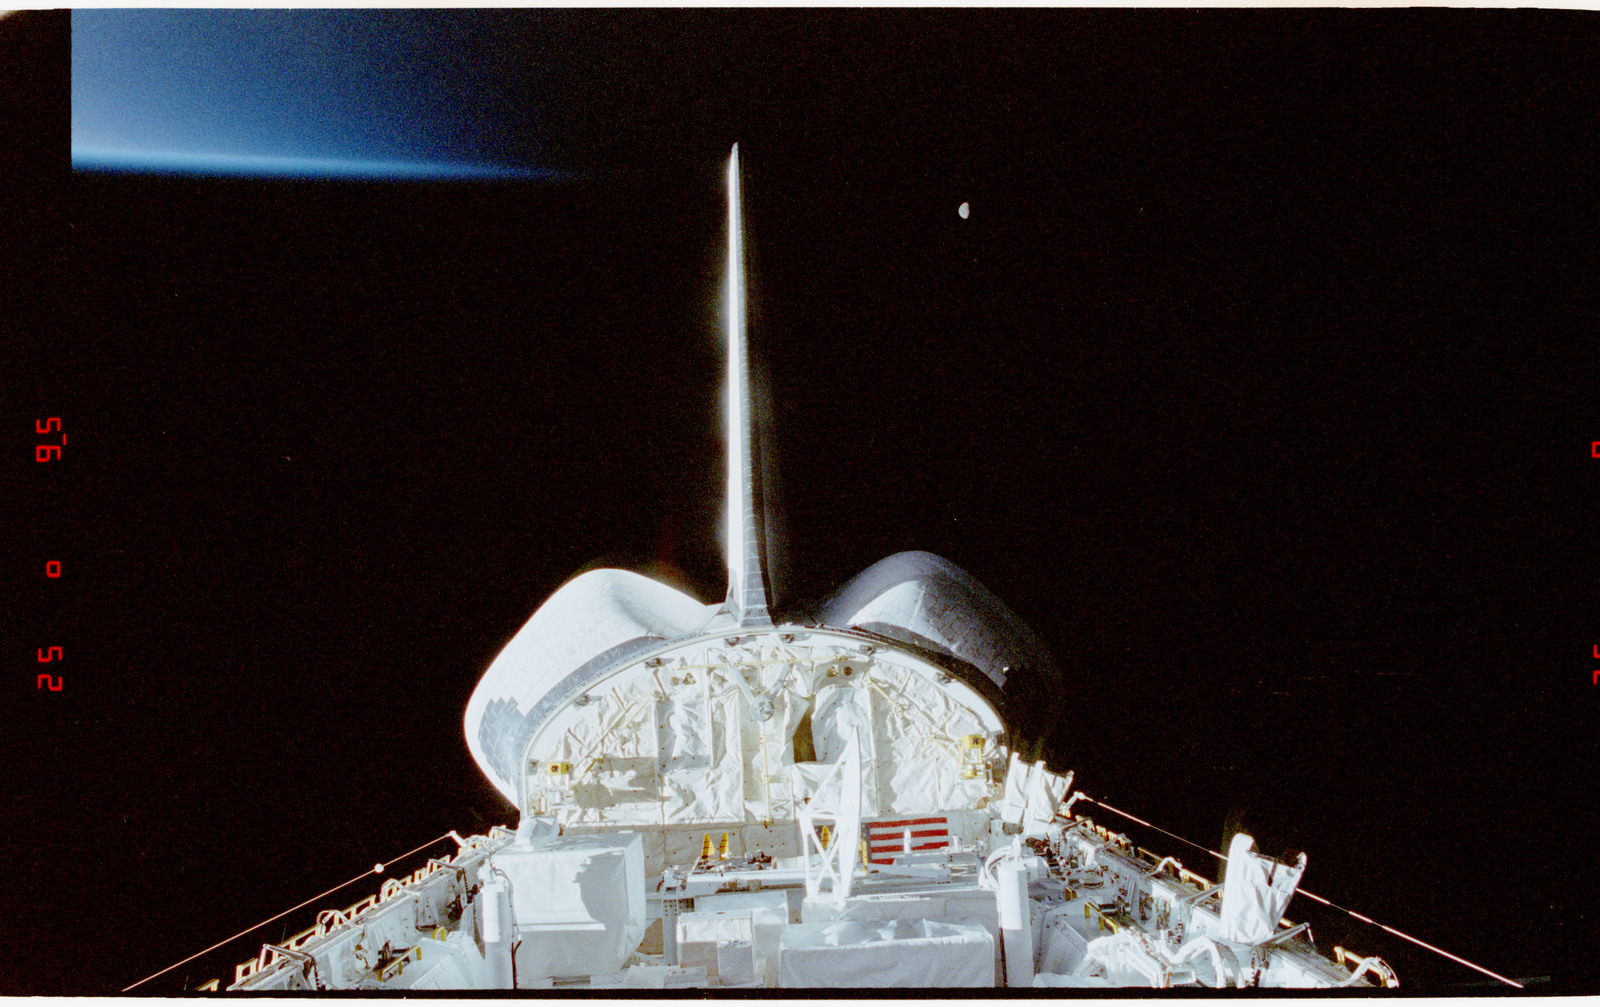 STS056-28-020 - STS-056 - Views of the payload bay, Earth limb with day/night terminator, and moon.